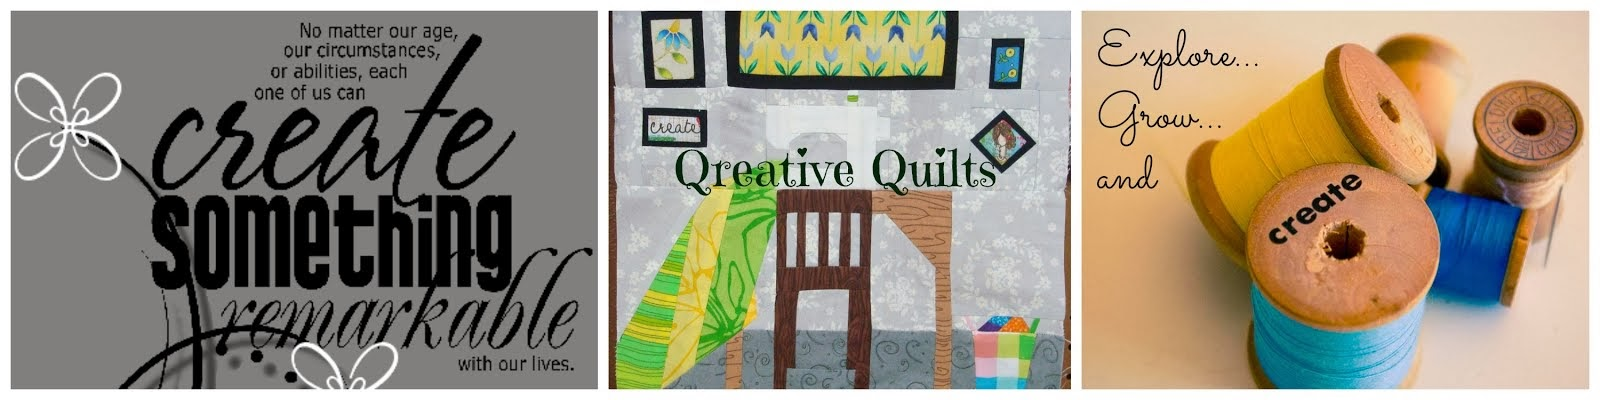 Qreative Quilts